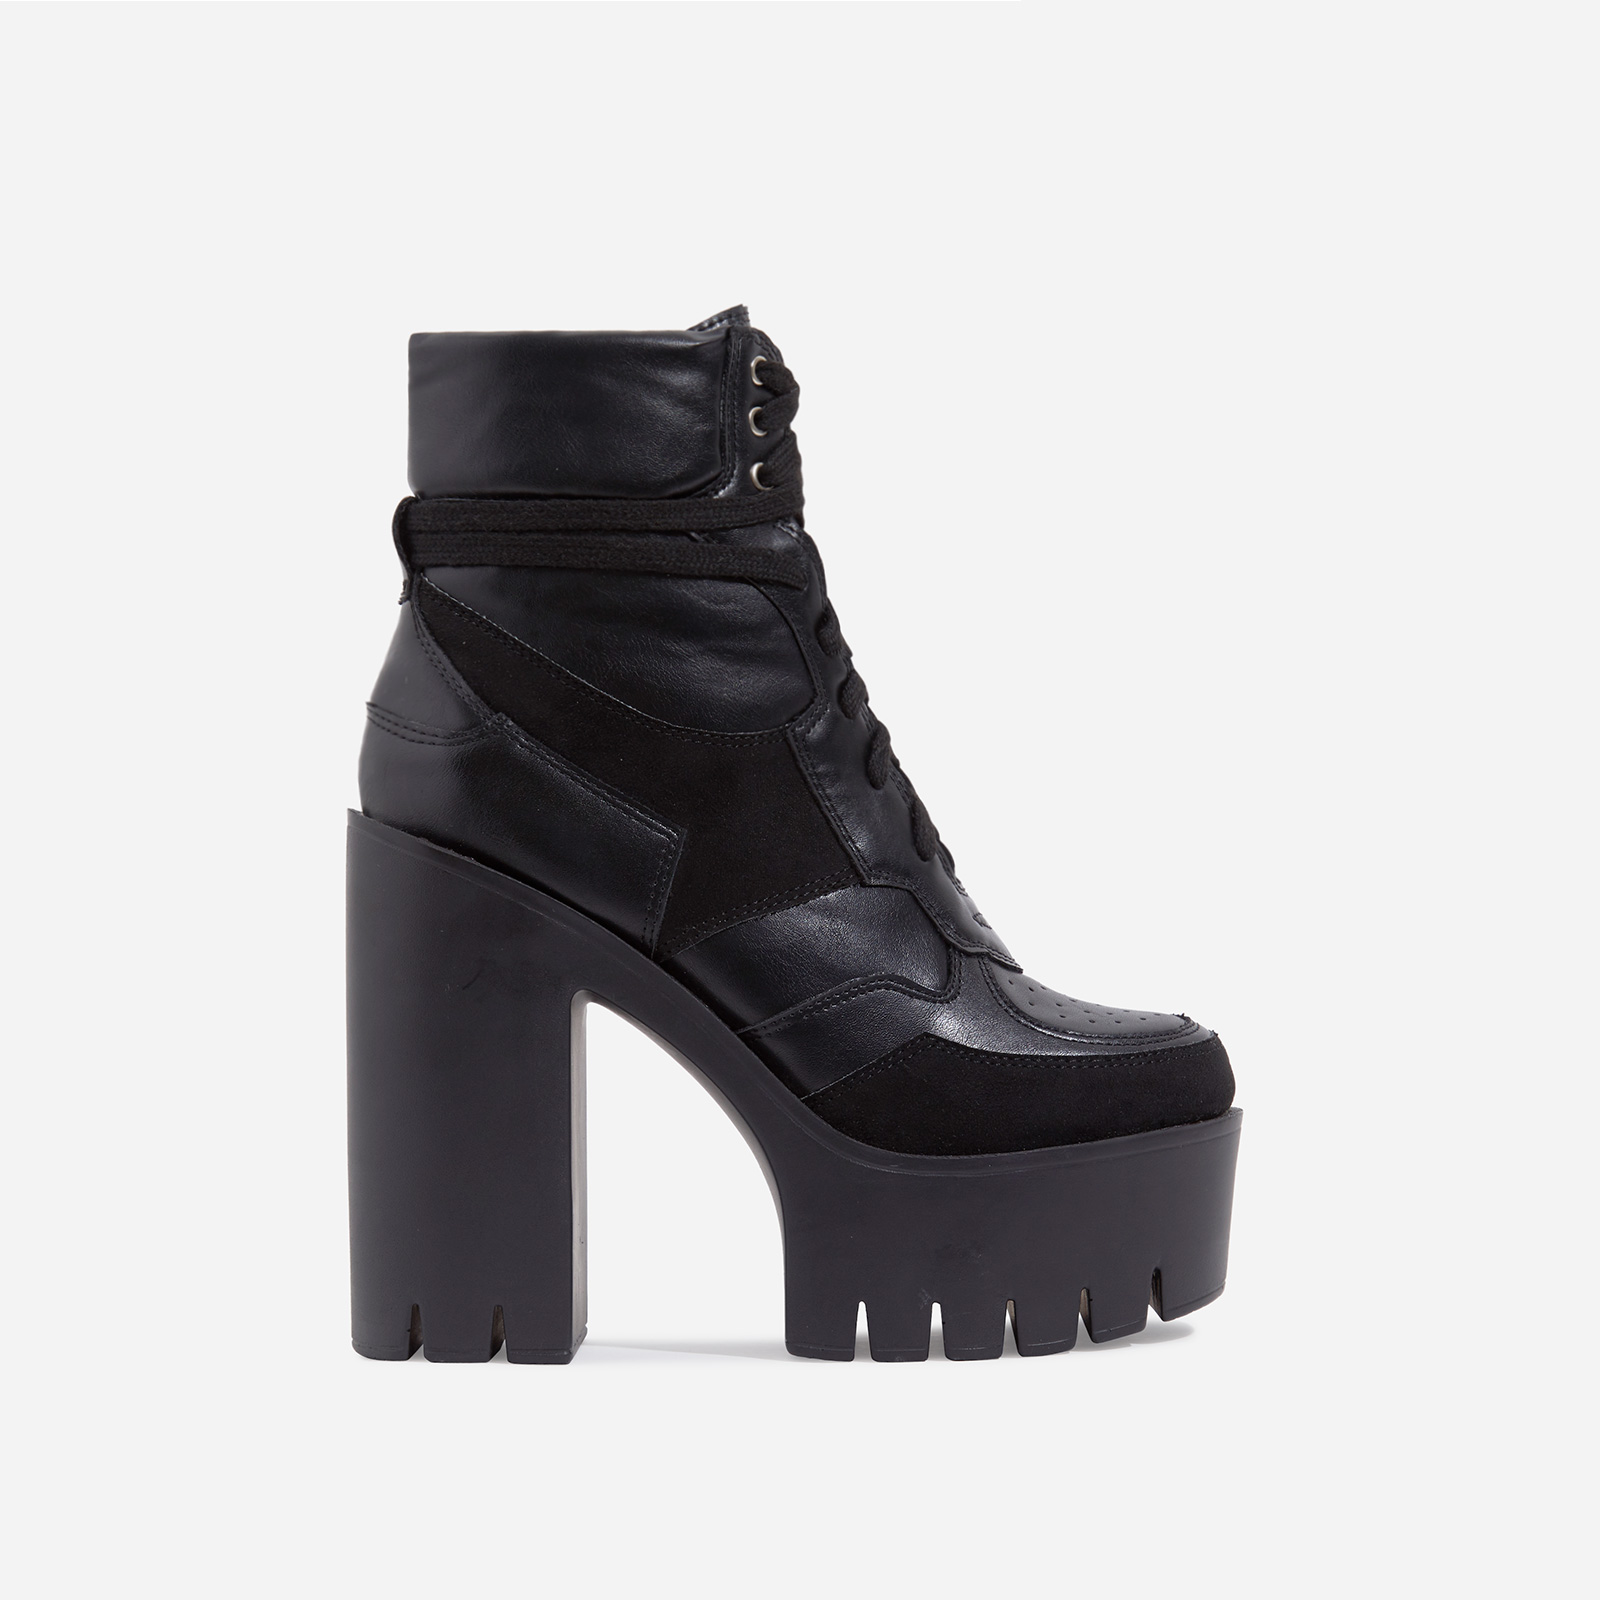 Penni Platform Lace Up Cleated Sole Ankle Biker Boot In Black Faux Leather